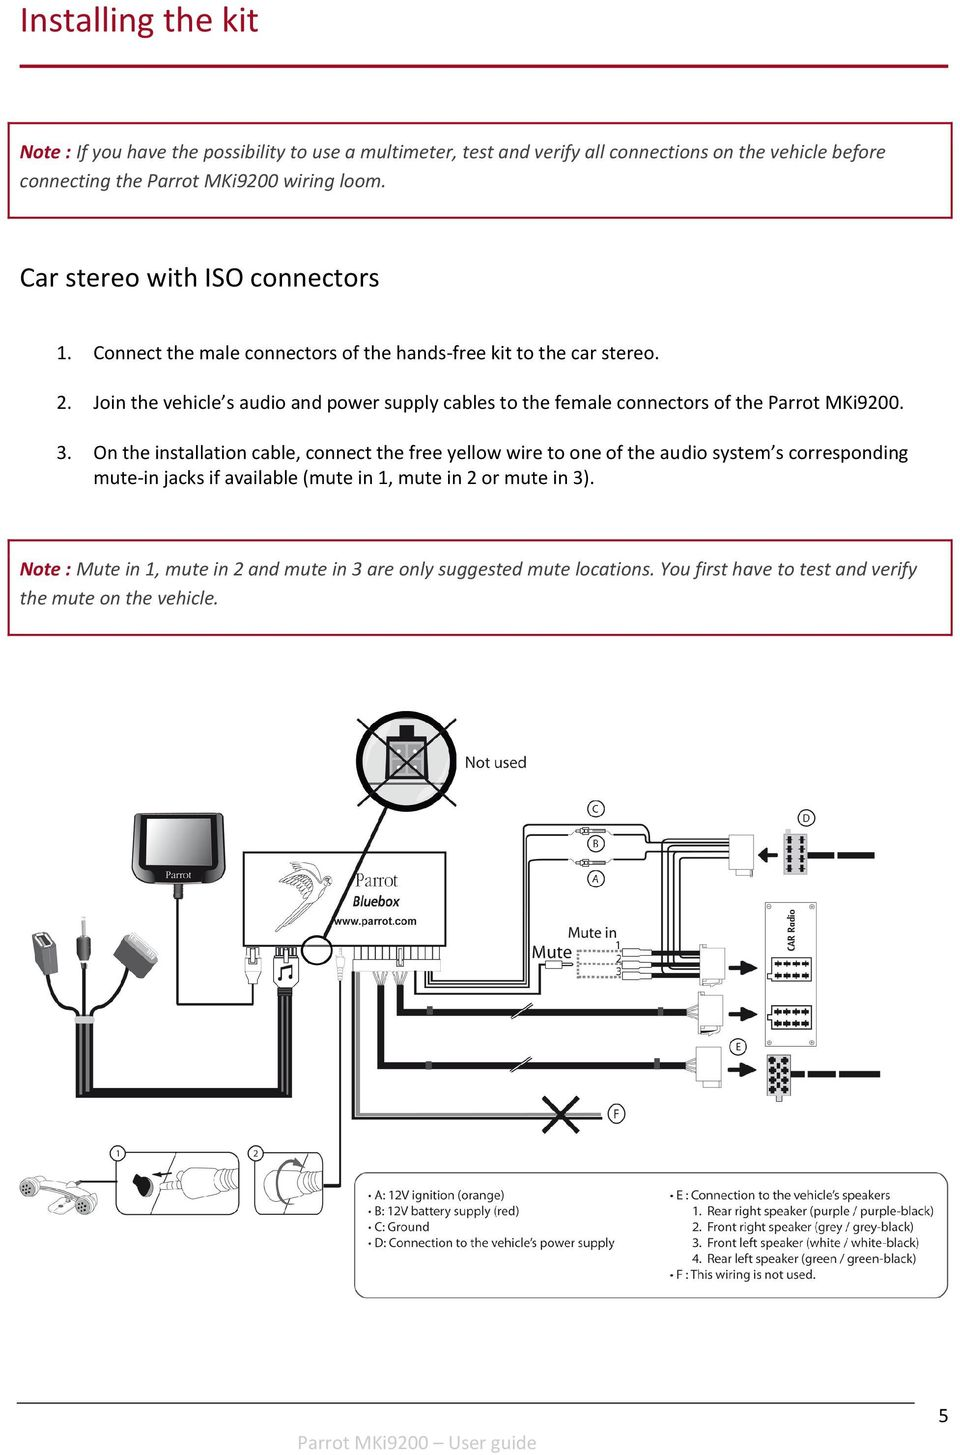 Parrot Mki9200 User Guide Pdf Wiring Diagram Nokia Car Kit Join The Vehicle S Audio And Power Supply Cables To Female Connectors Of